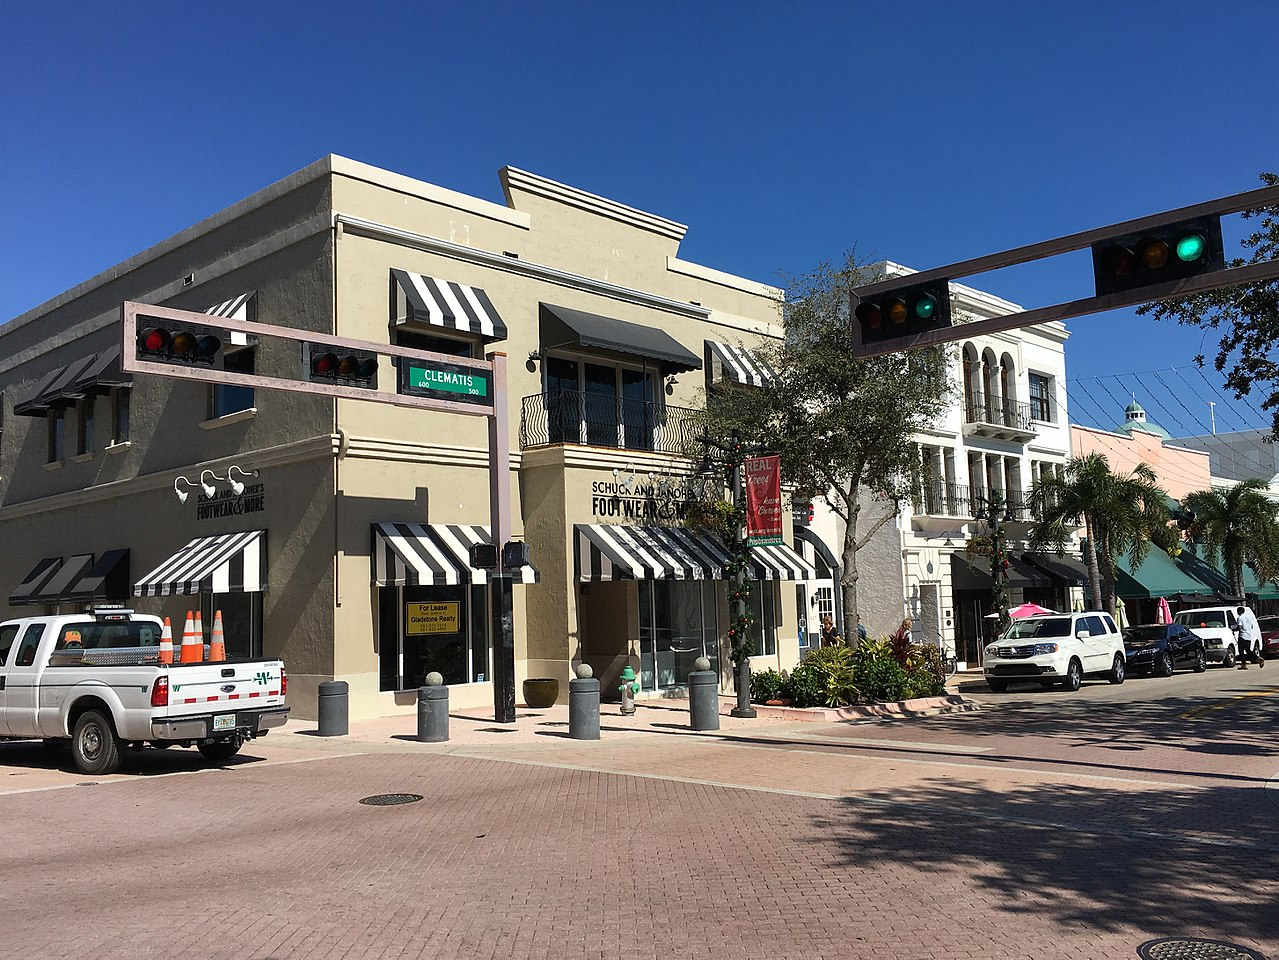 Best Place to Visit in West Palm Beach-Clematis Street